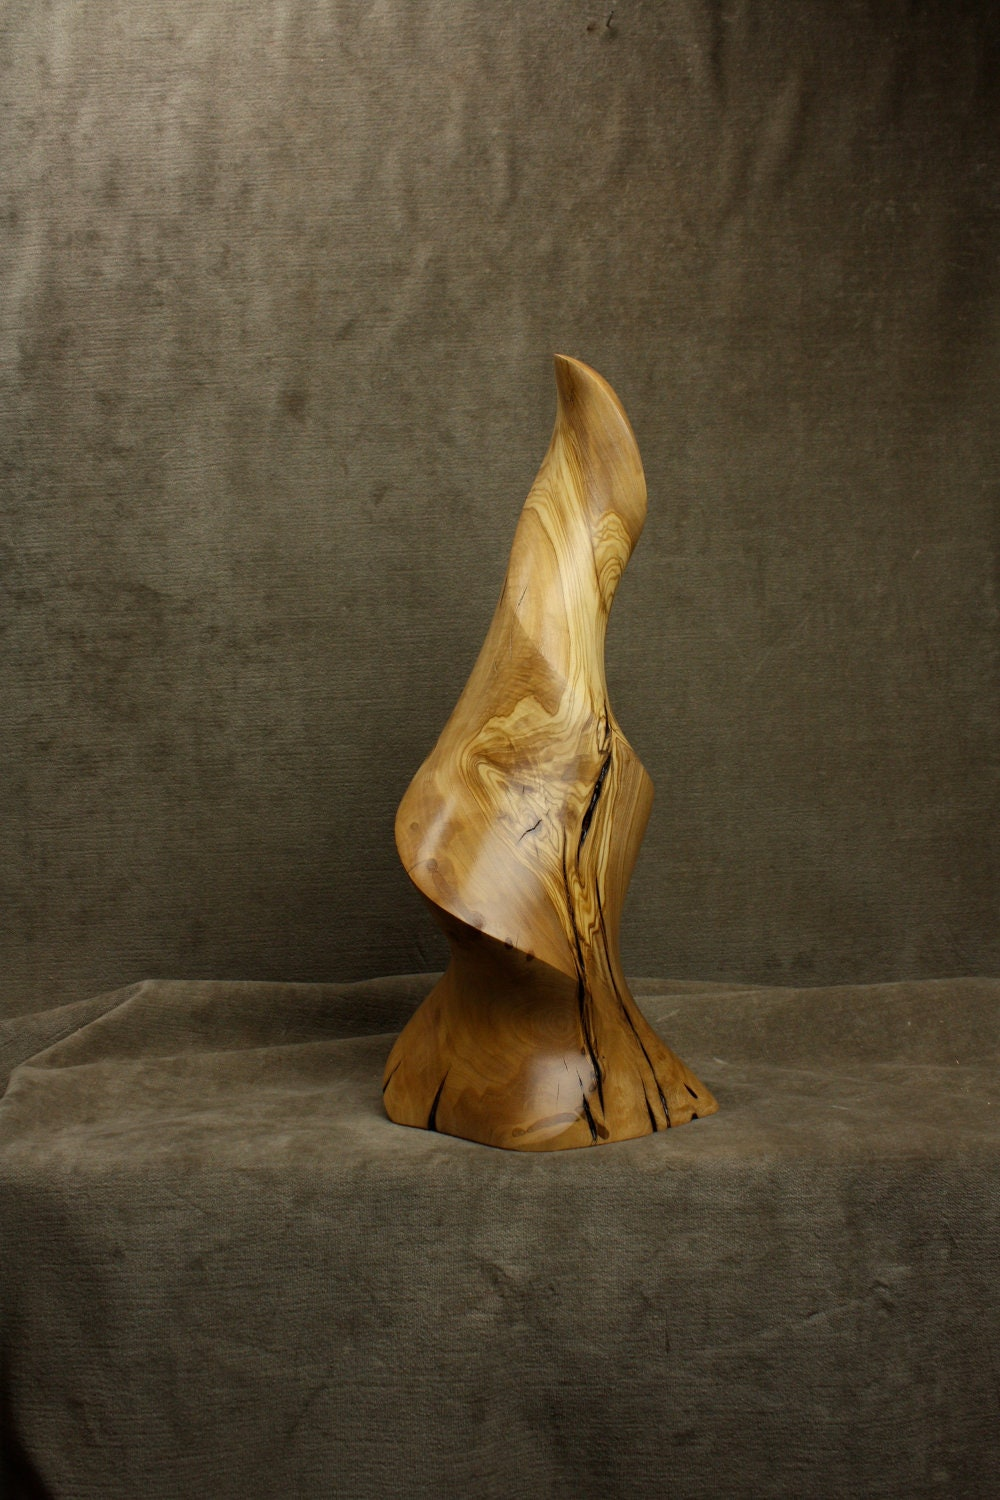 Abstract Art Wood Carving Sculpture Ooak Christmas Gift